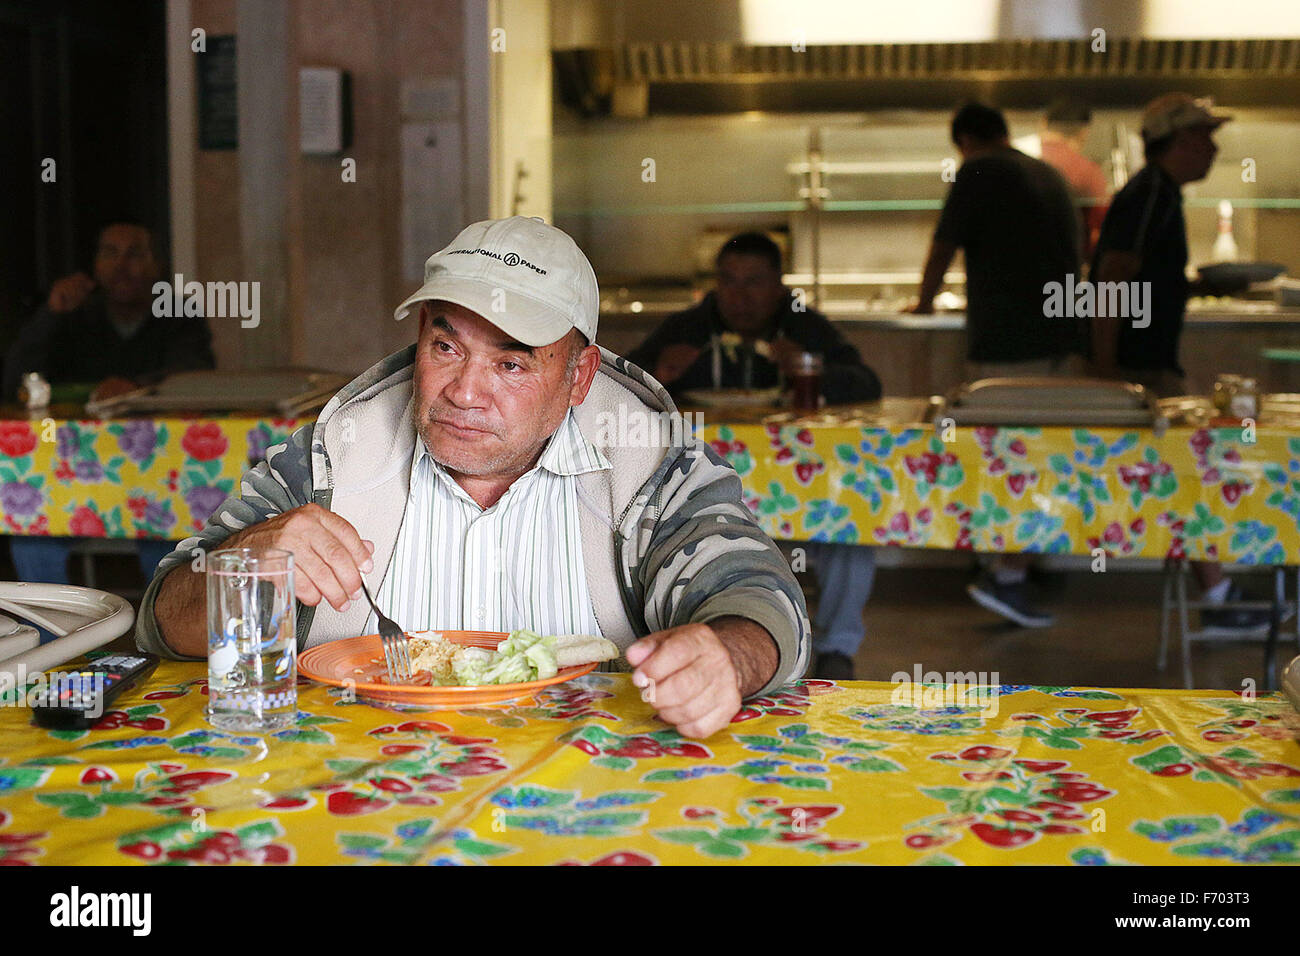 St Helena, CA, USA. 19th Nov, 2015. Jesus Teña watches television while he eats dinner at the River Ranch - Stock Image